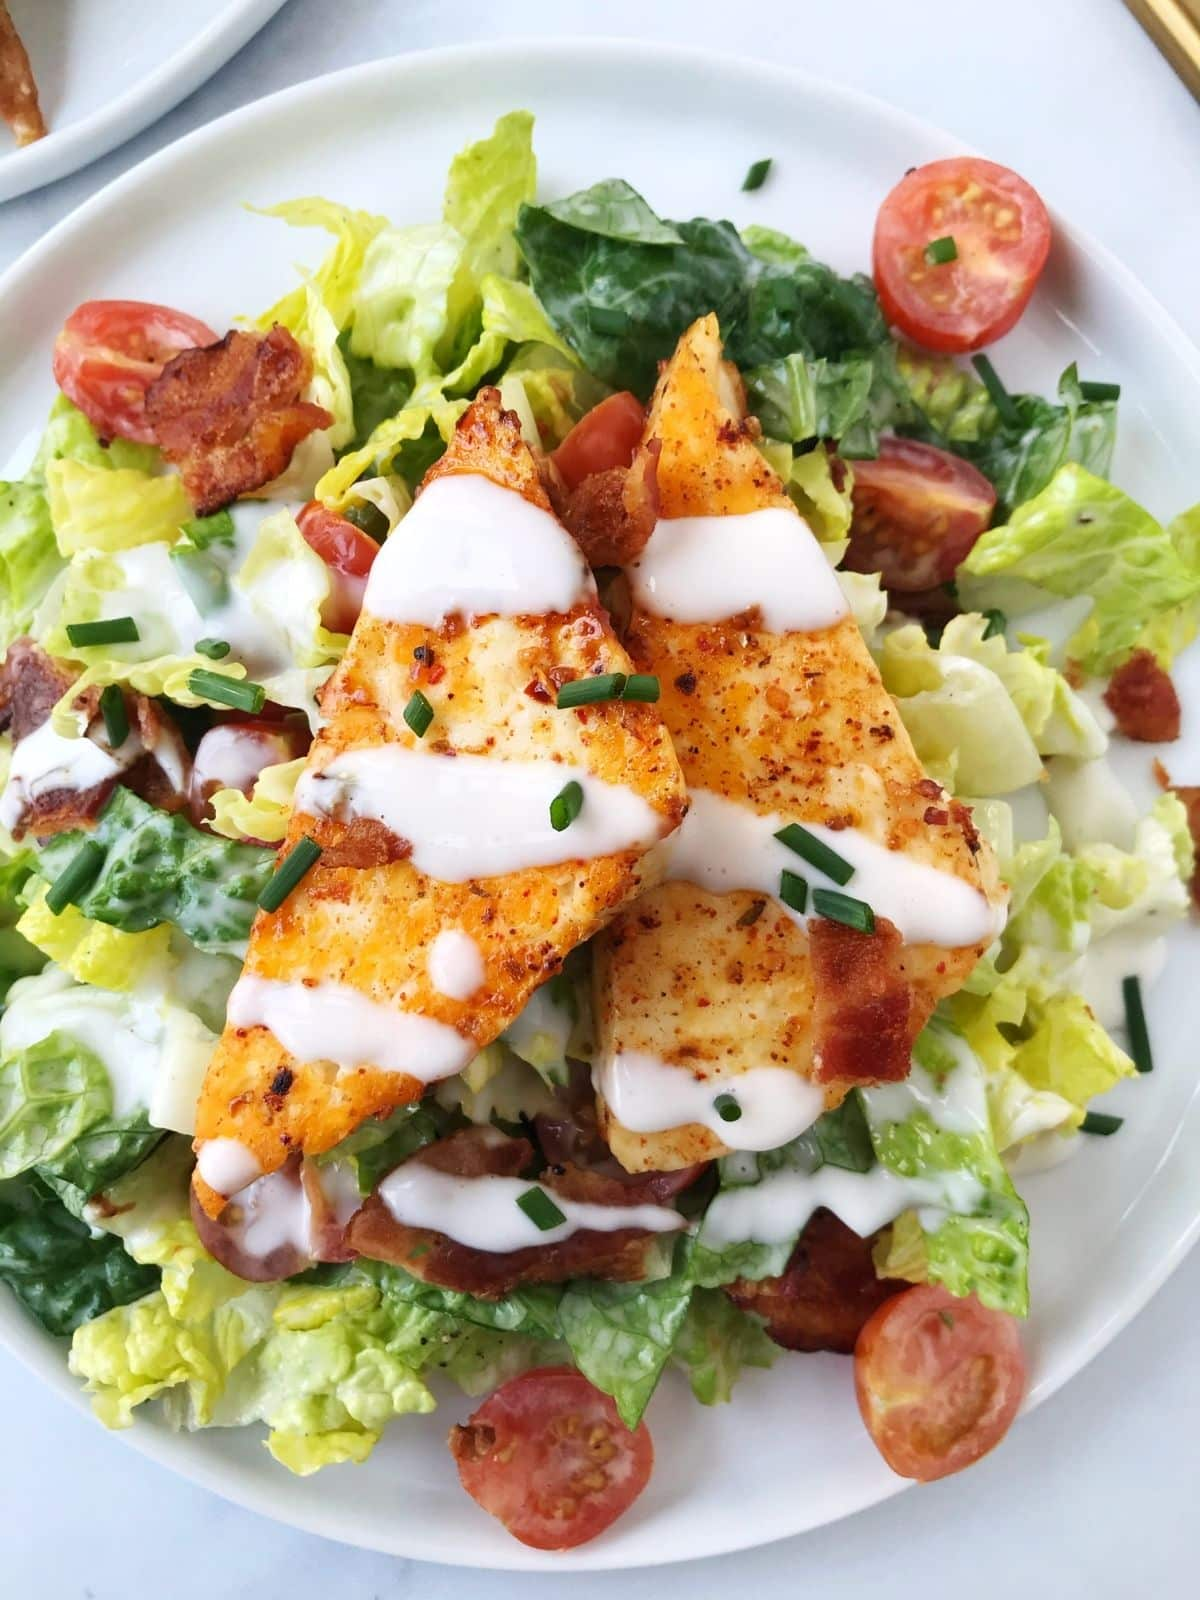 plate of BLT salad topped with hallouimi